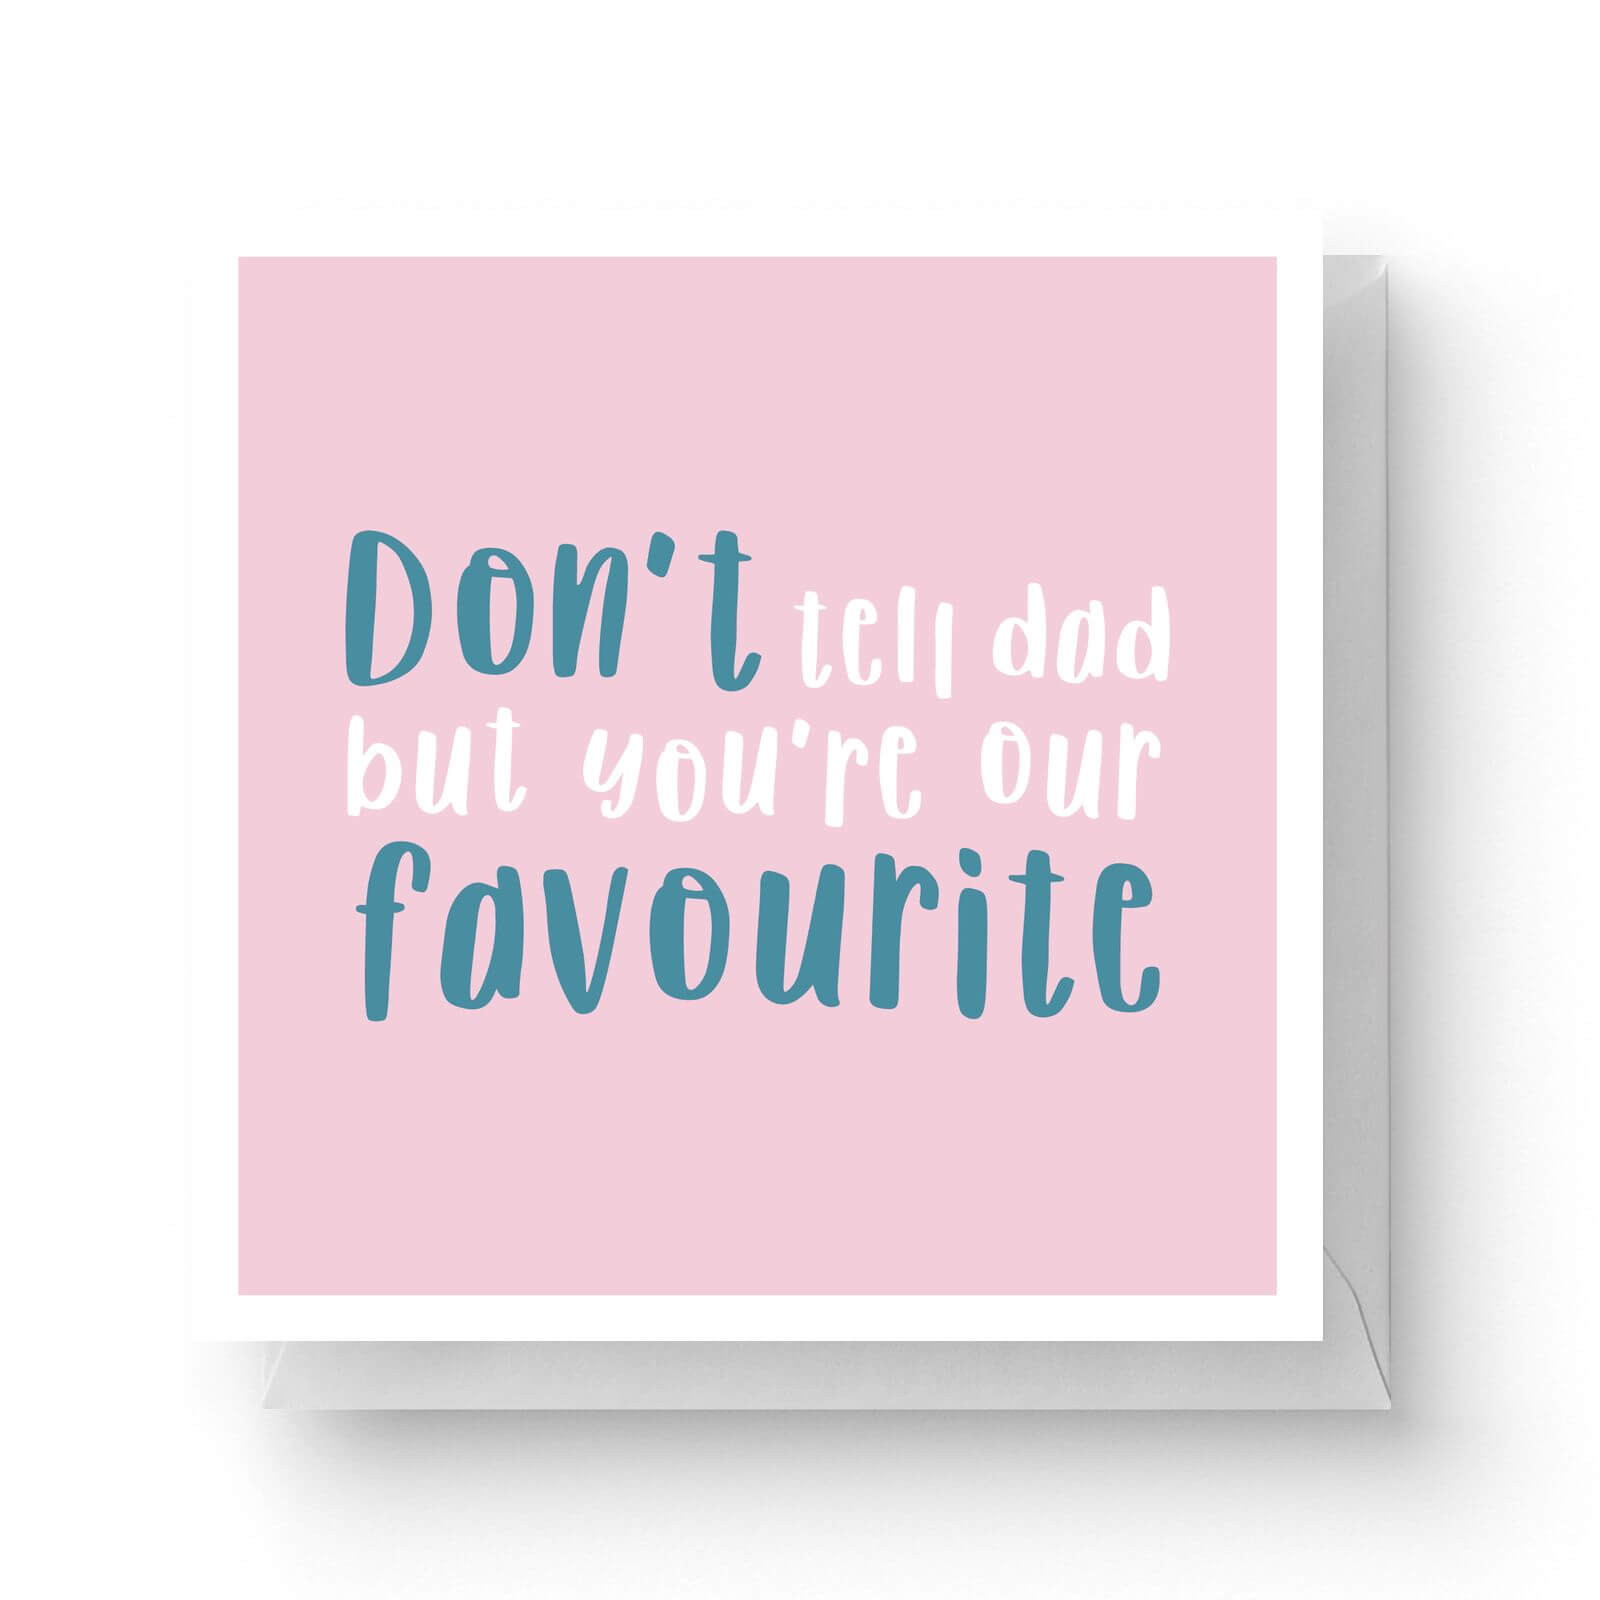 Image of Don't Tell Dad But You're Our Favourite Square Greetings Card (14.8cm x 14.8cm)